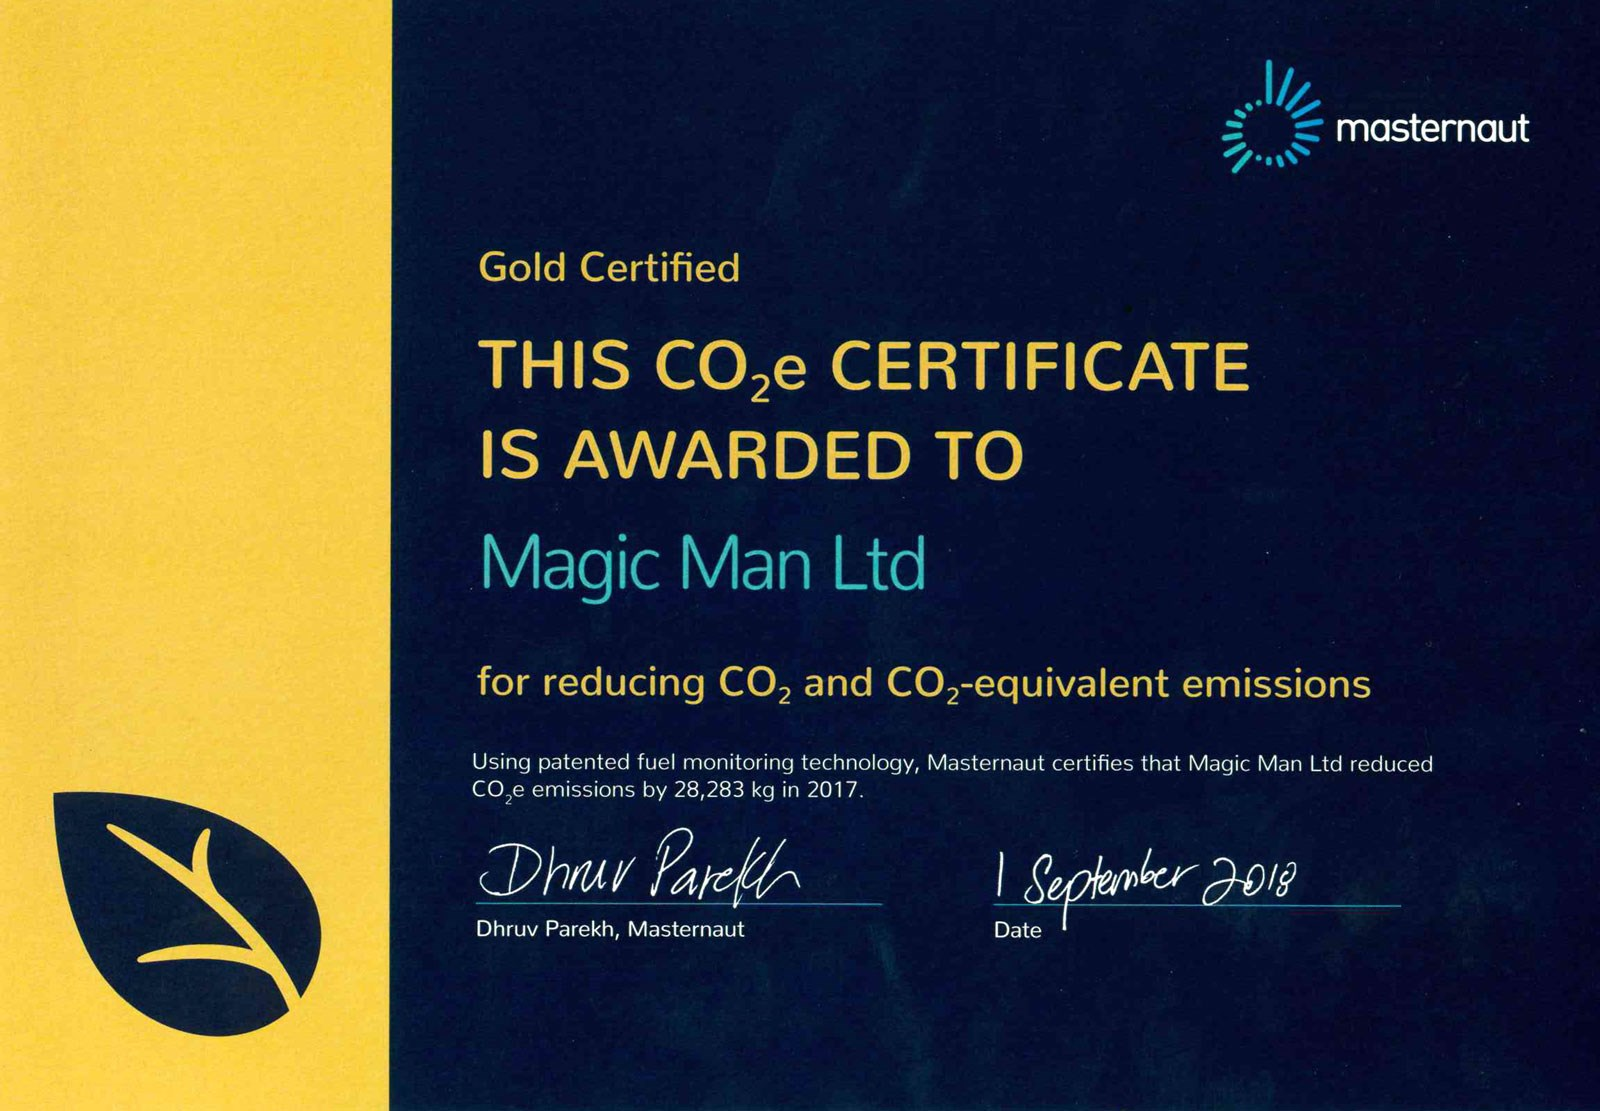 CO2 emissions reduction certificate